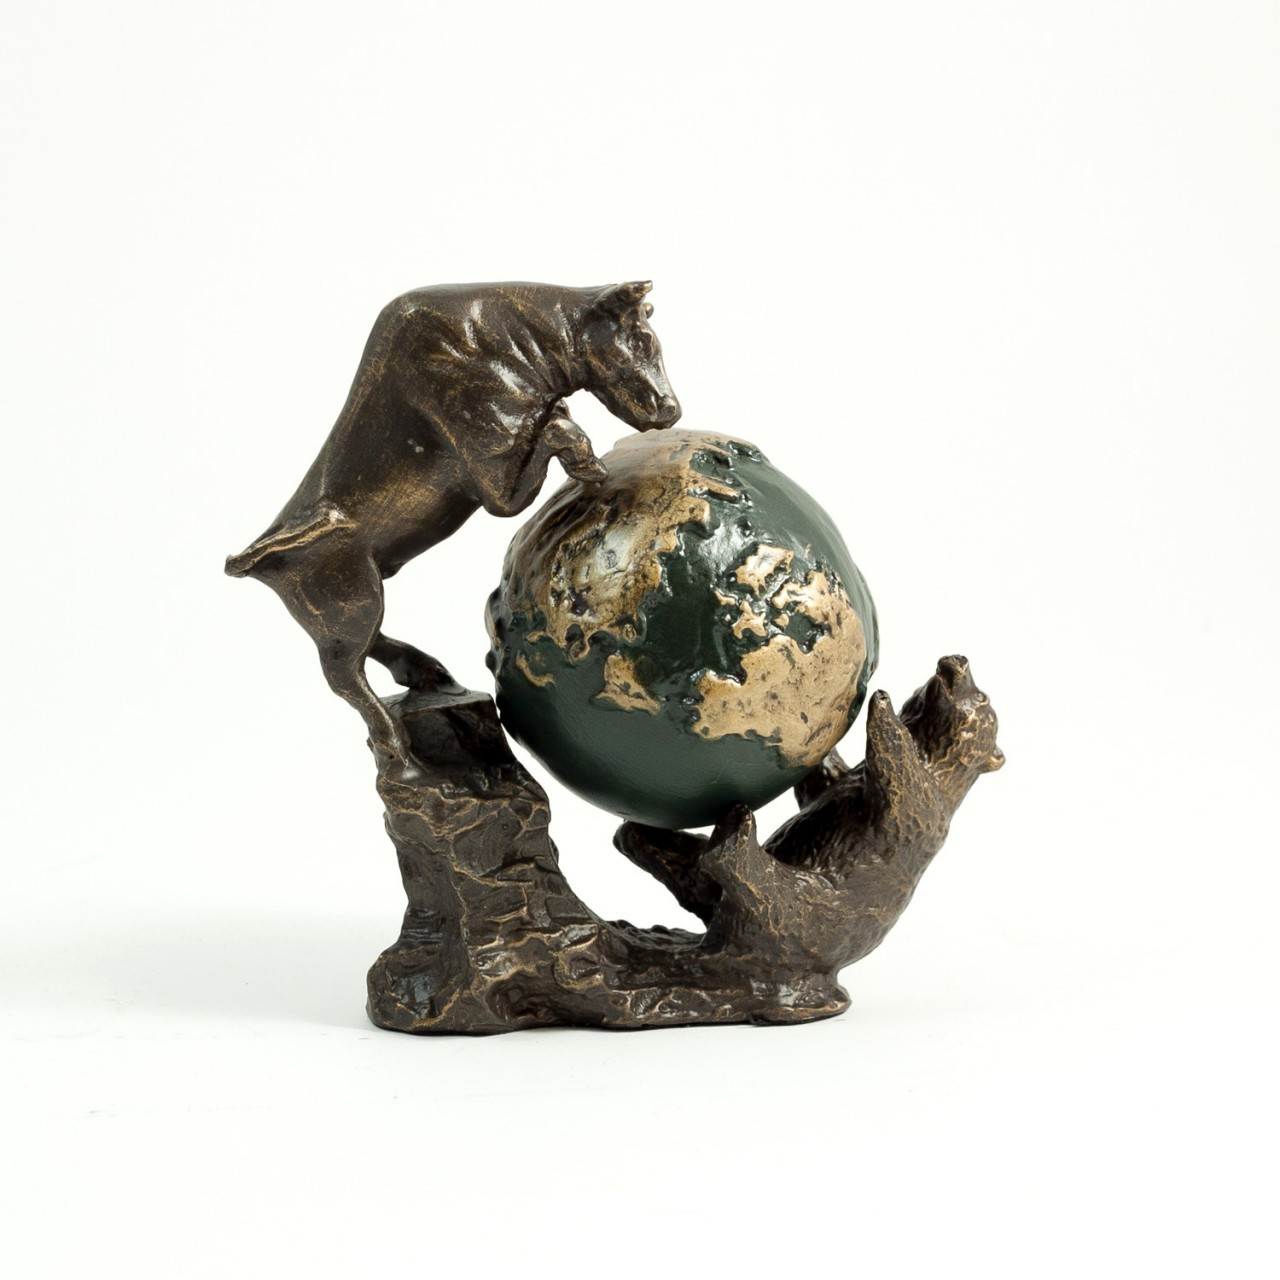 Bull And Bear Gifts Bull And Bear Battle For The World Executive Gift Shoppe